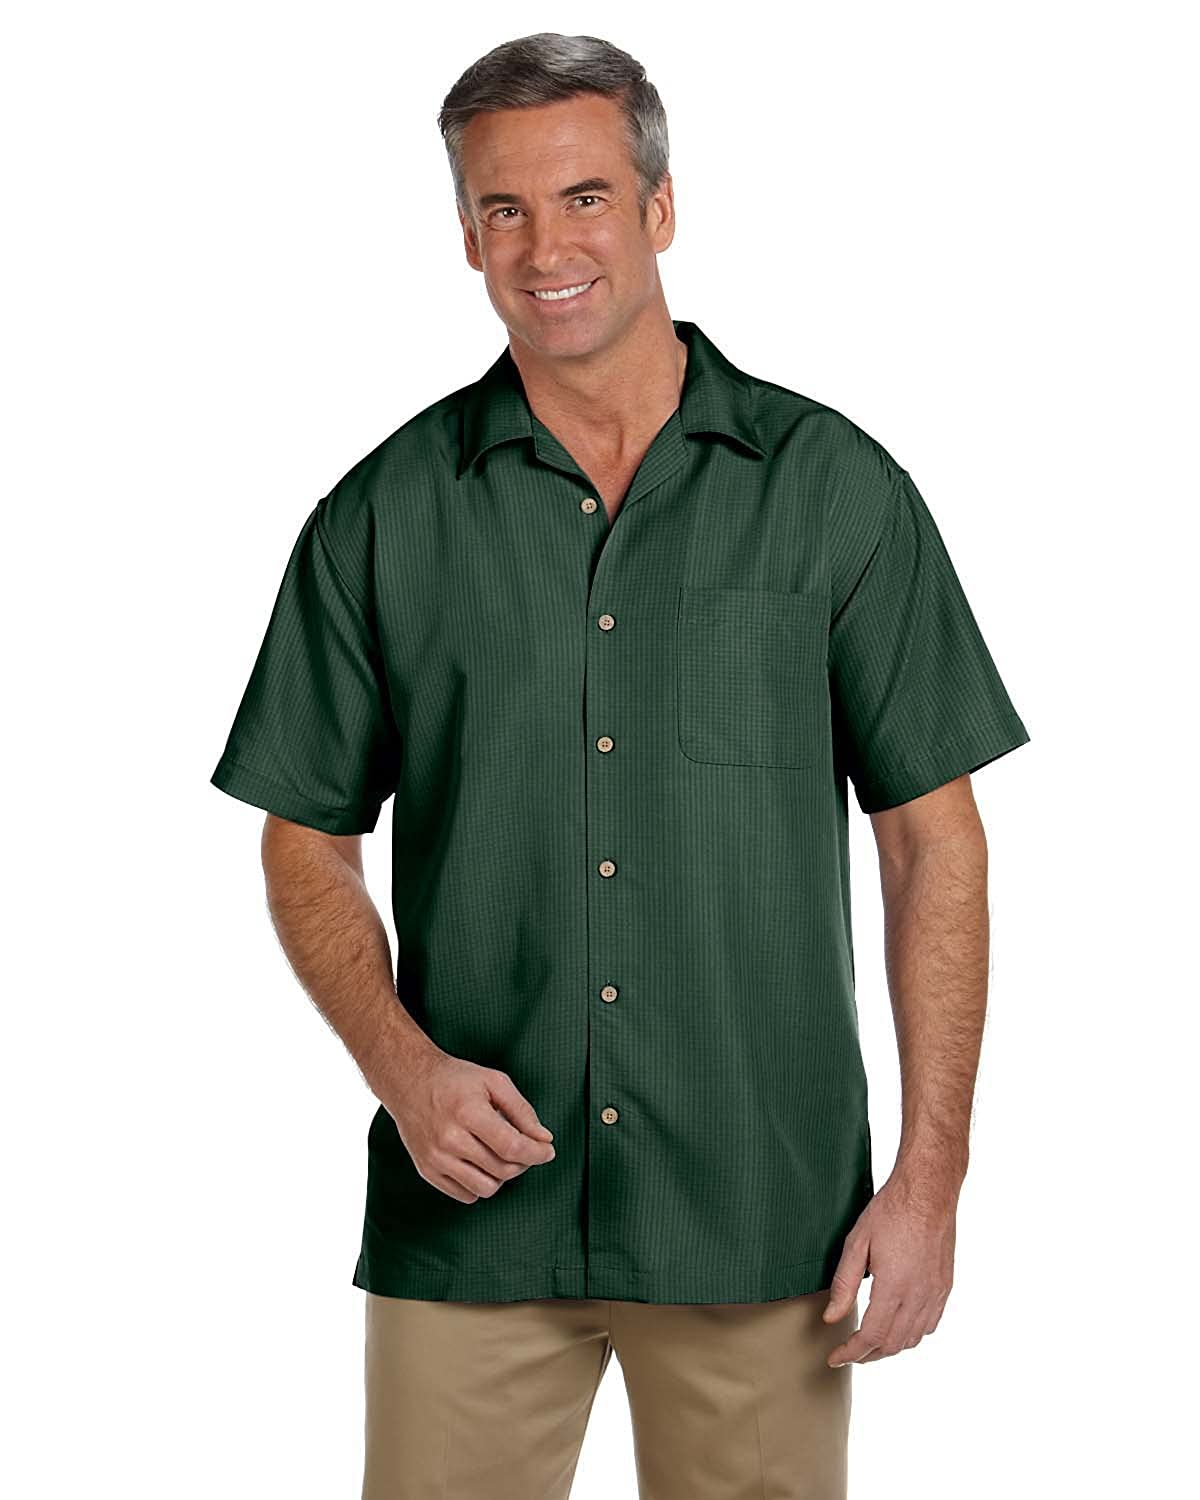 M560 Harriton Mens Barbados Textured Camp Shirt PALM GREEN